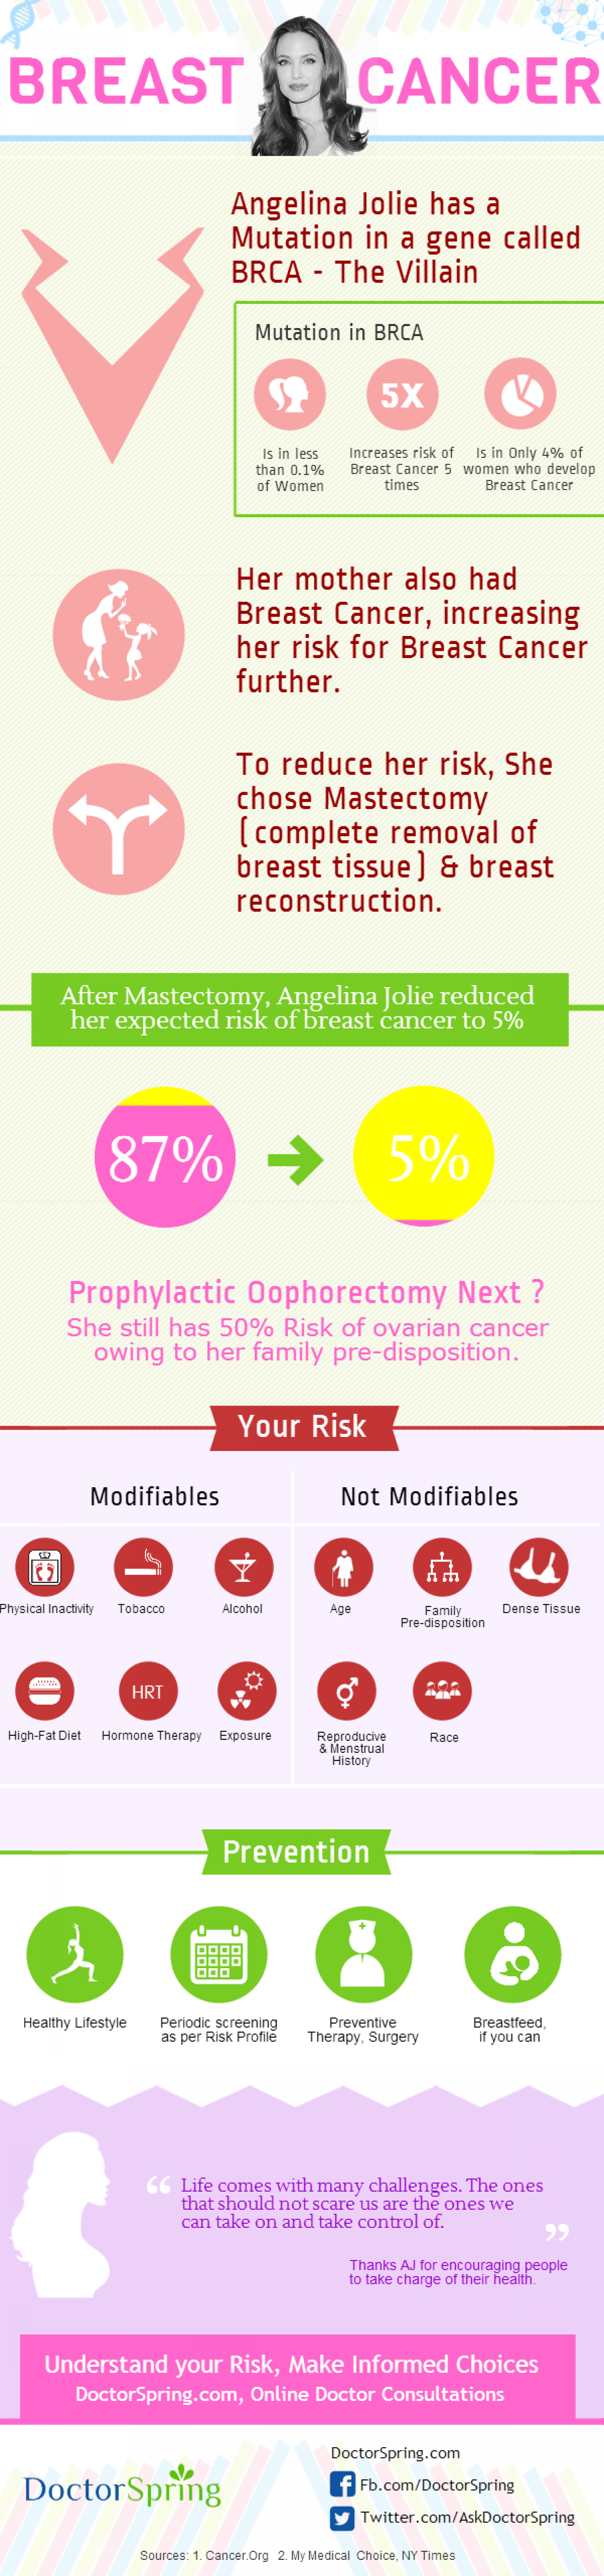 Make an informed decision - What you need to know about Anjelina's Breast Cancer story! Infographic